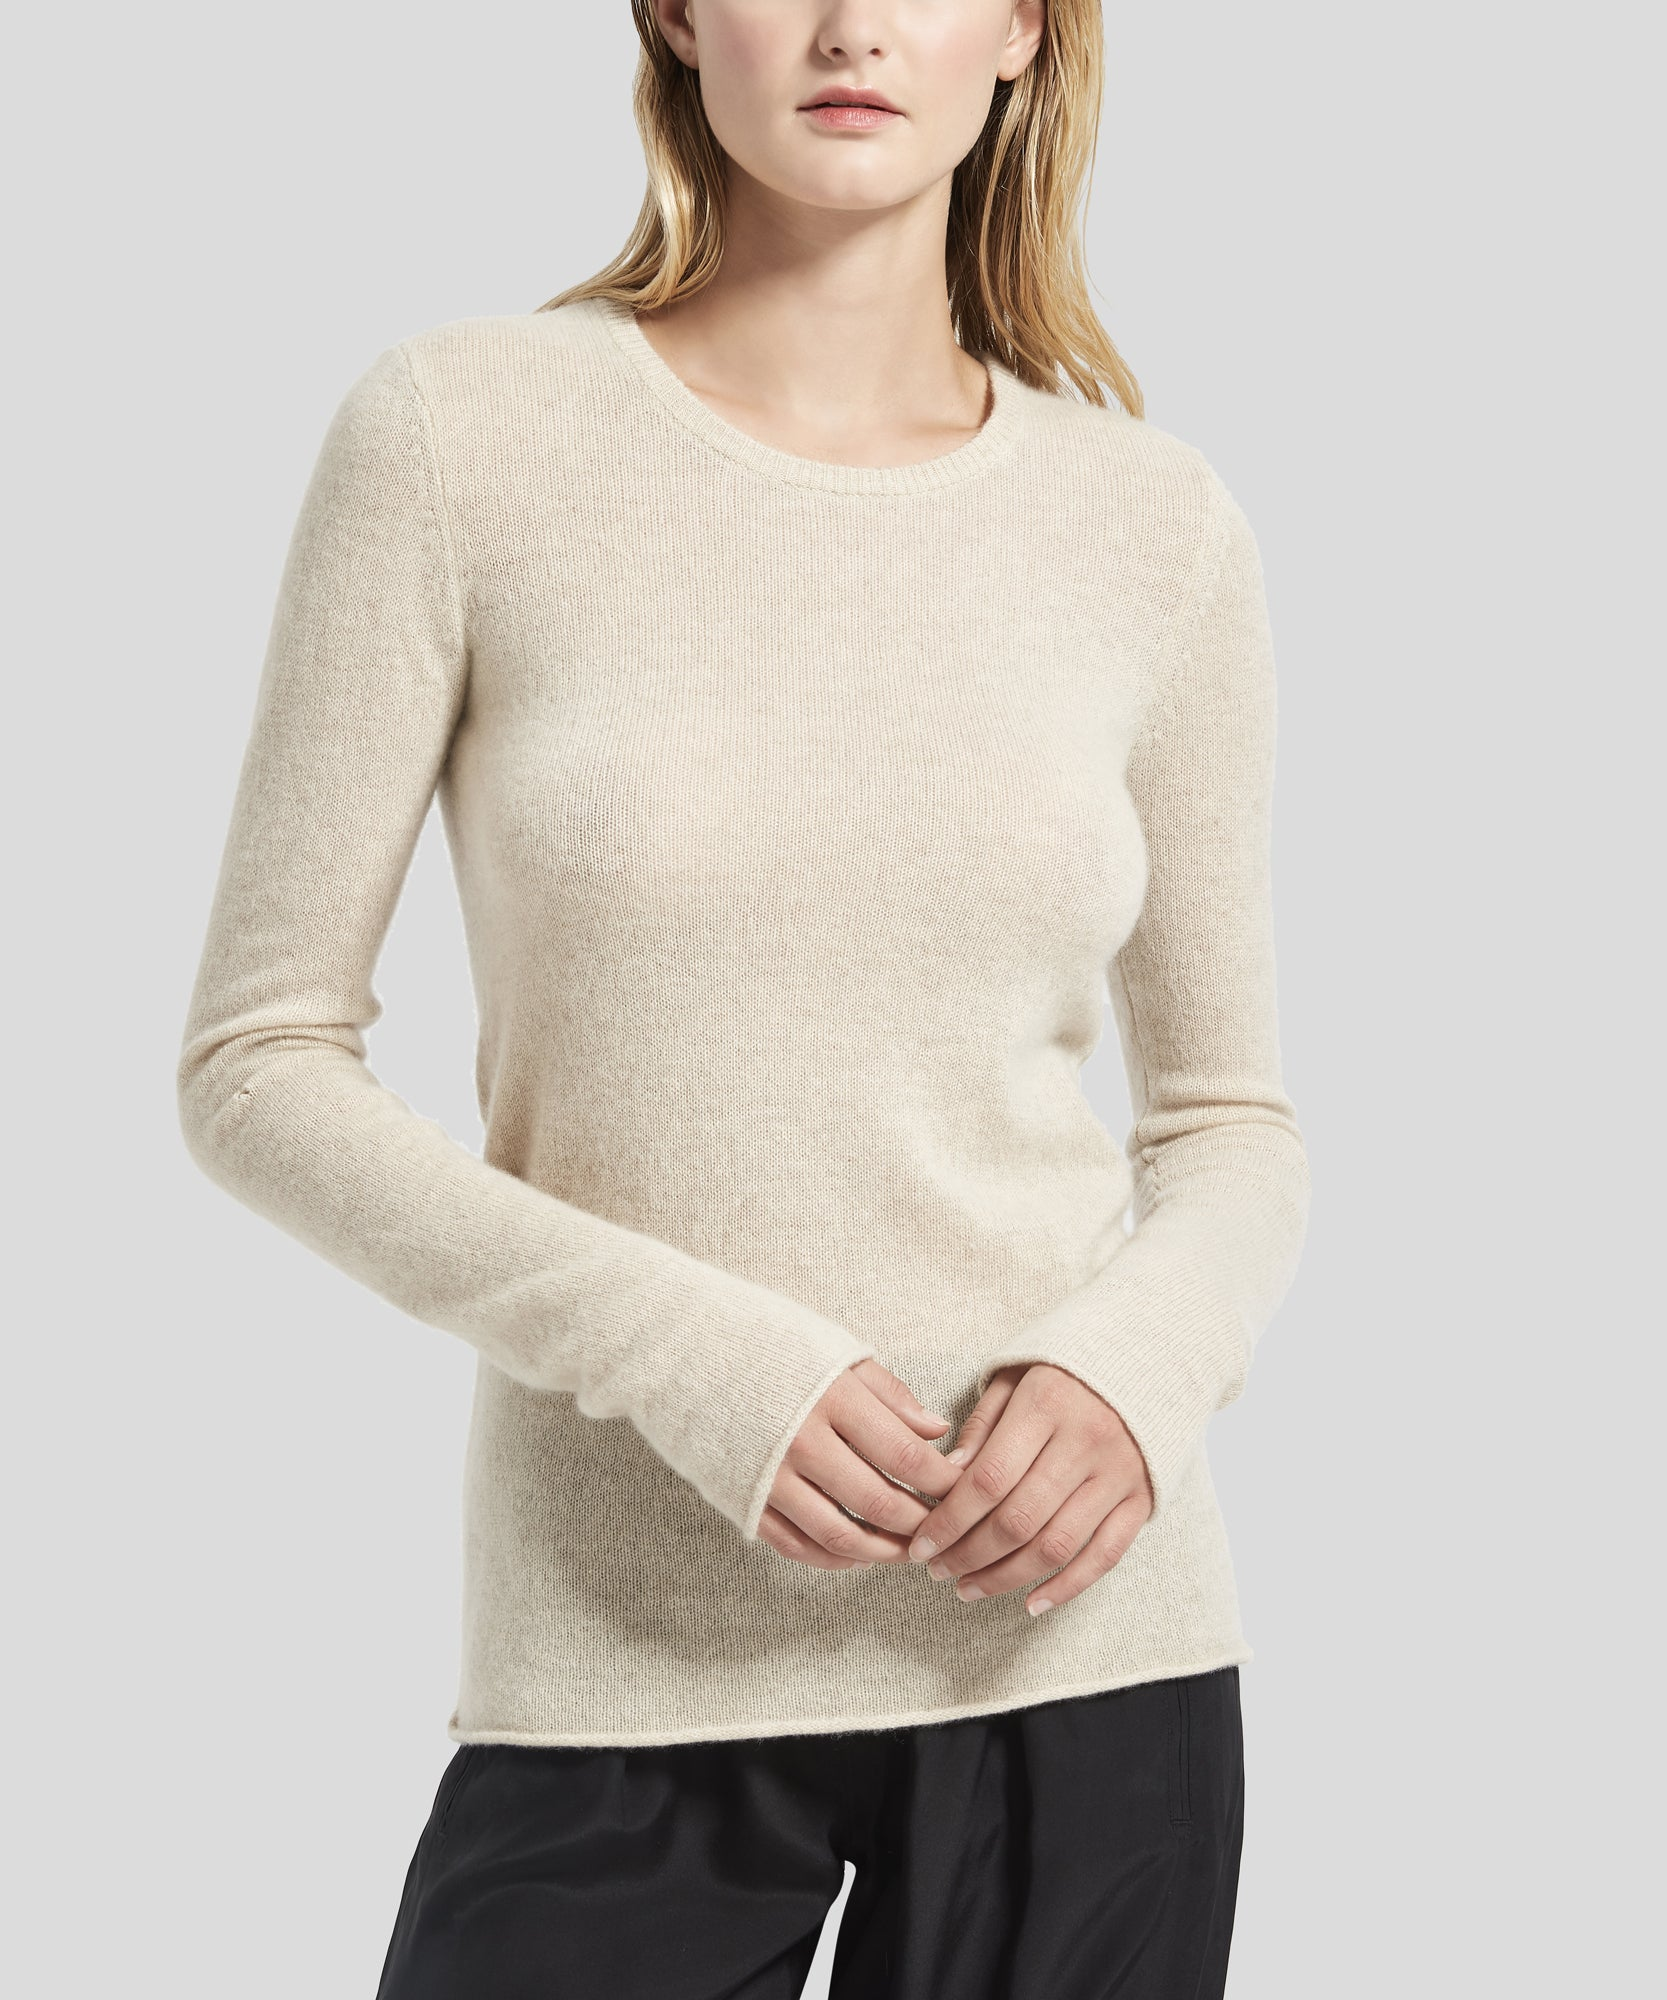 ATM Oatmeal Cashmere Crew Neck Sweater